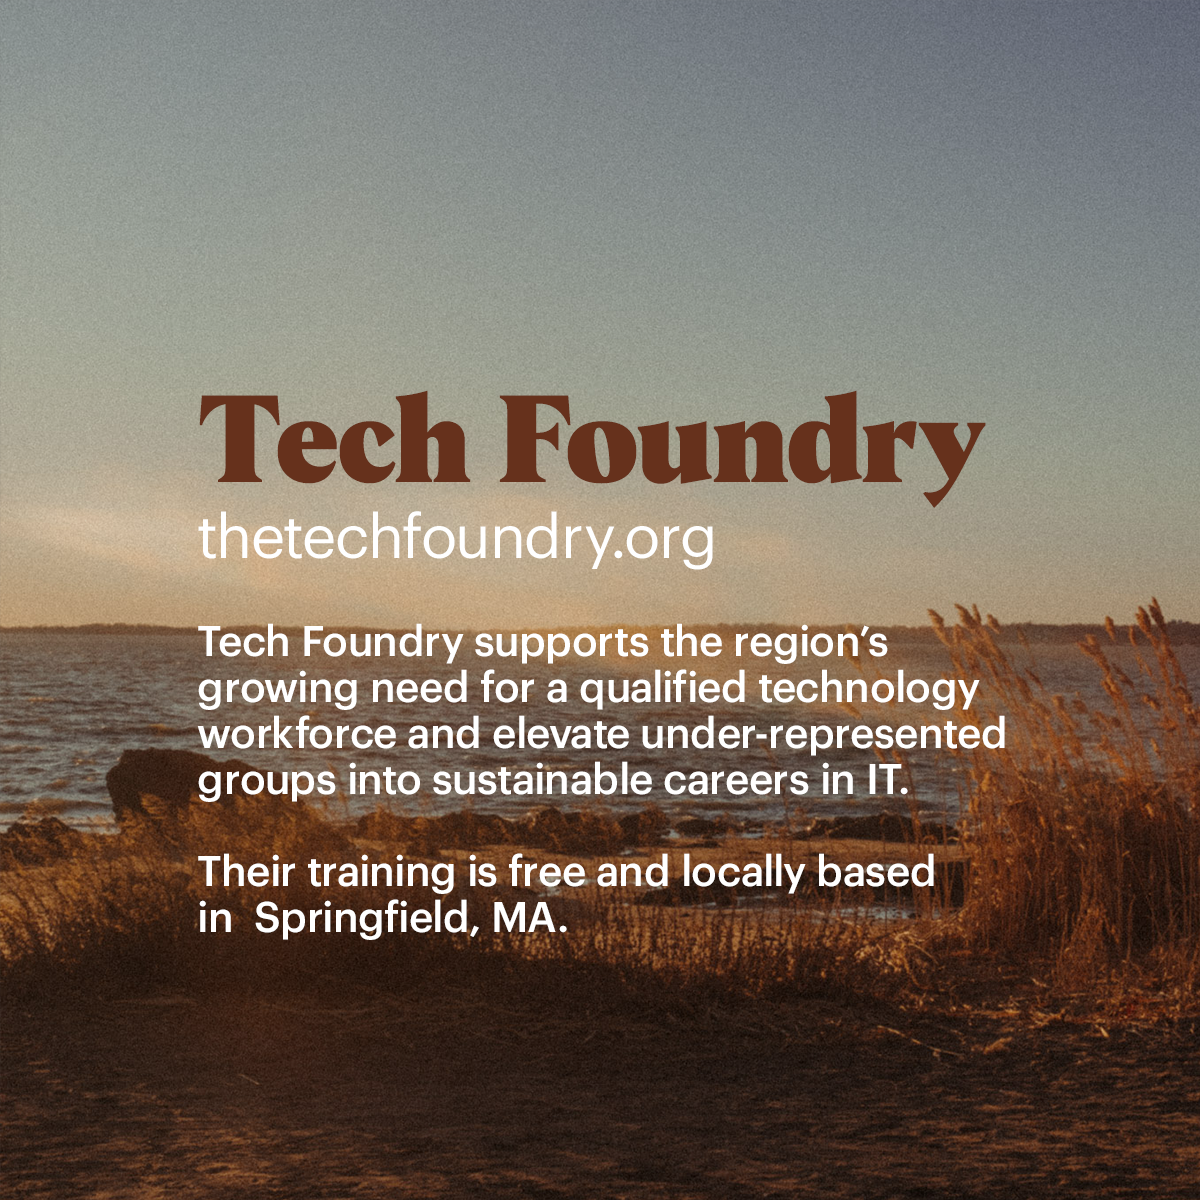 Tech Foundry Tech Foundry supports the region's  growing need for a qualified technology  workforce and elevate under-represented  groups into sustainable careers in IT. Their training is free and locally based in Springfield, MA.